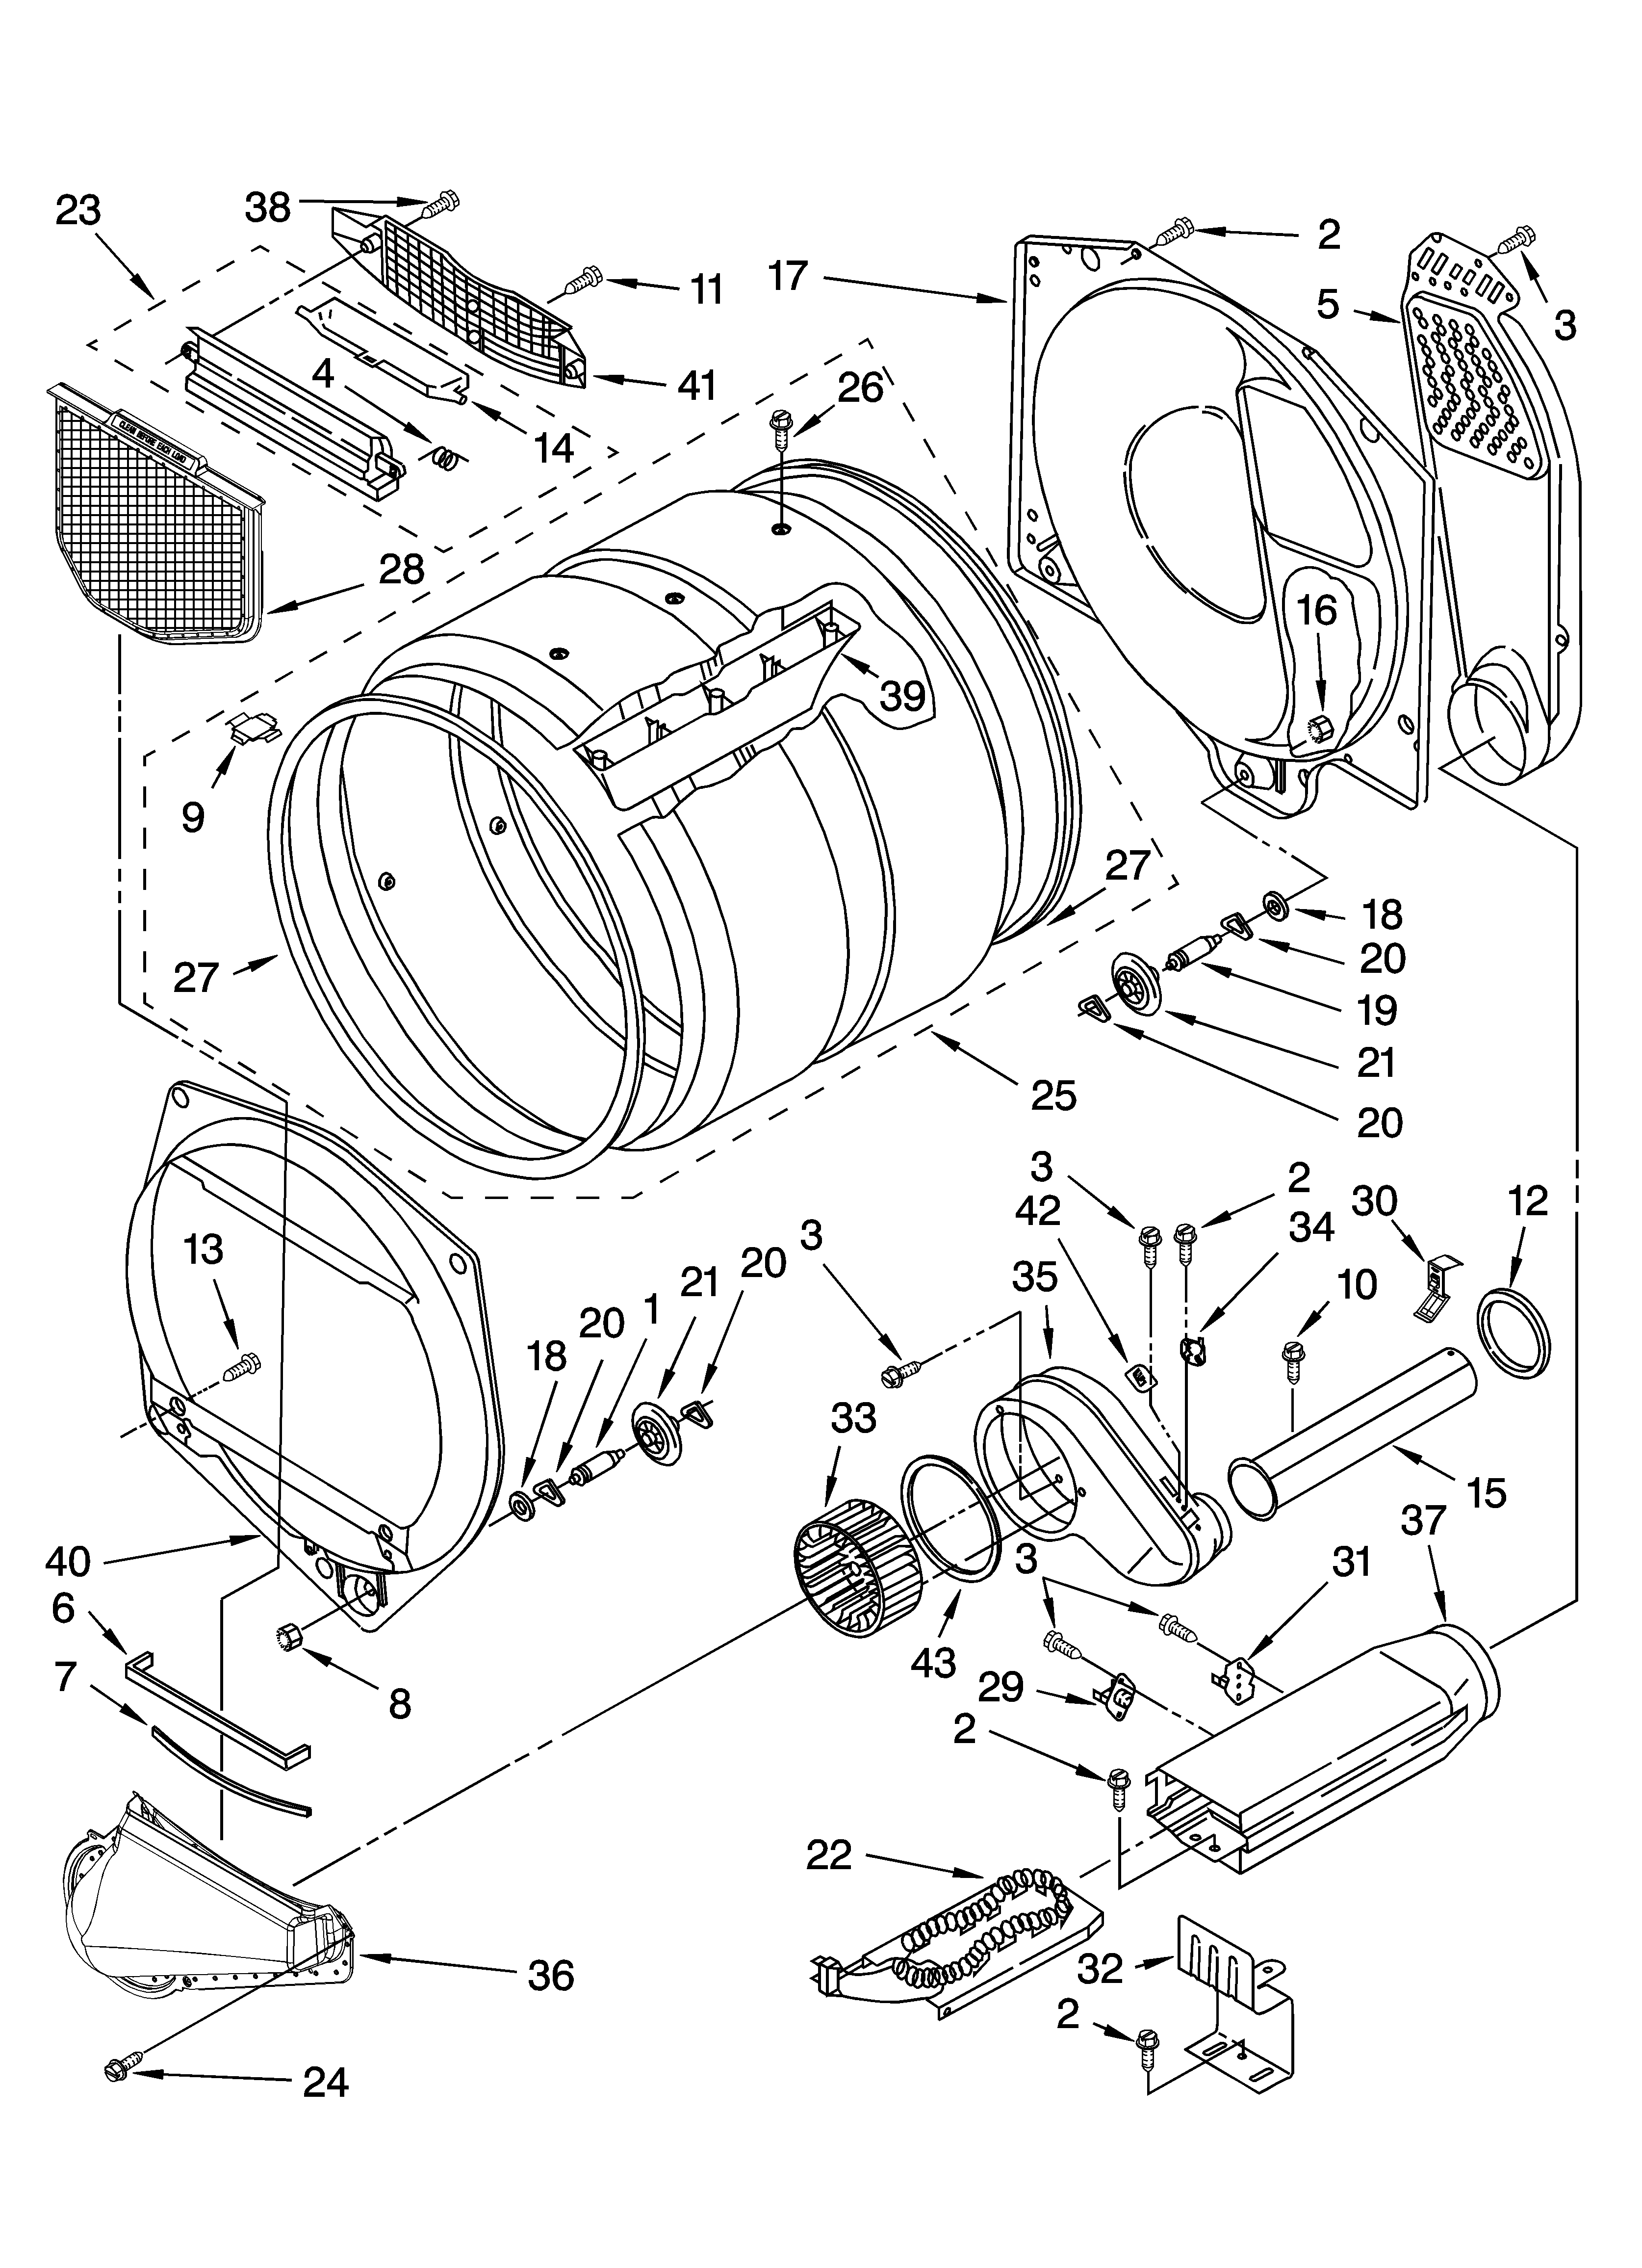 Whirlpool 3XWED5705SW0 bulkhead parts, optional parts (not included) diagram